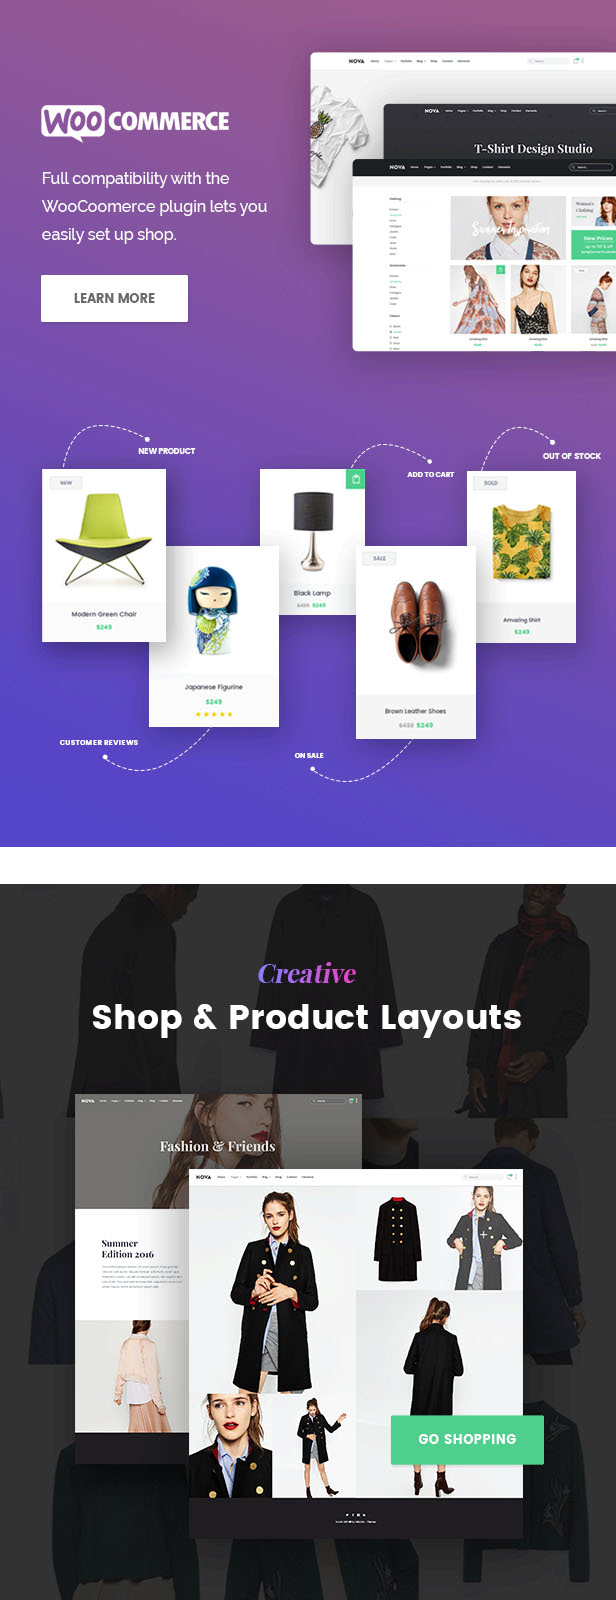 Affinity - A Genuinely Gigantic and Refreshing Multipurpose Theme by